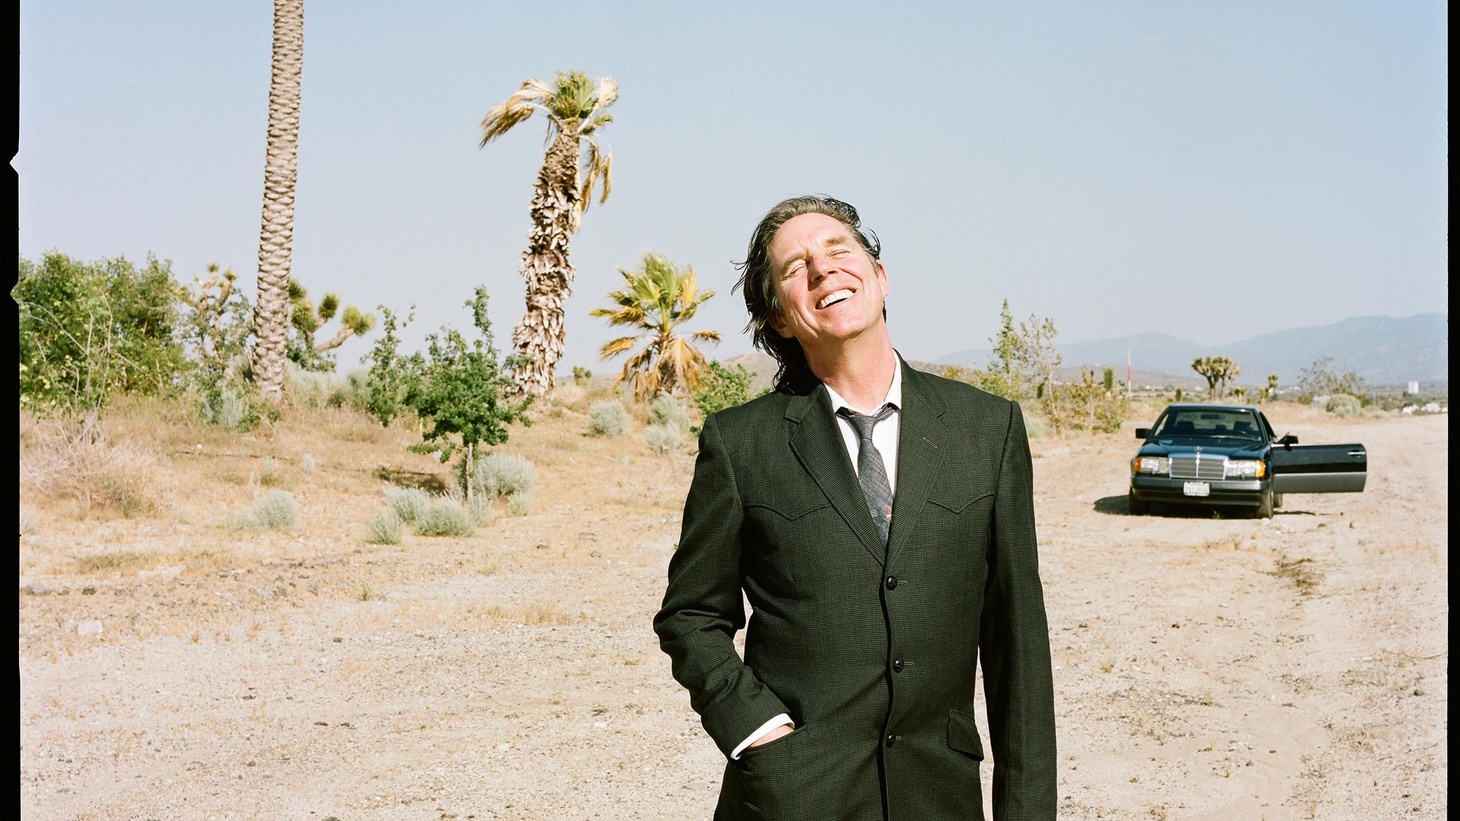 John Doe co-founded SoCal's proudest entry in the world of punk, the band X. He continues to shine in his solo career, where he leans towards deeply personal songs..